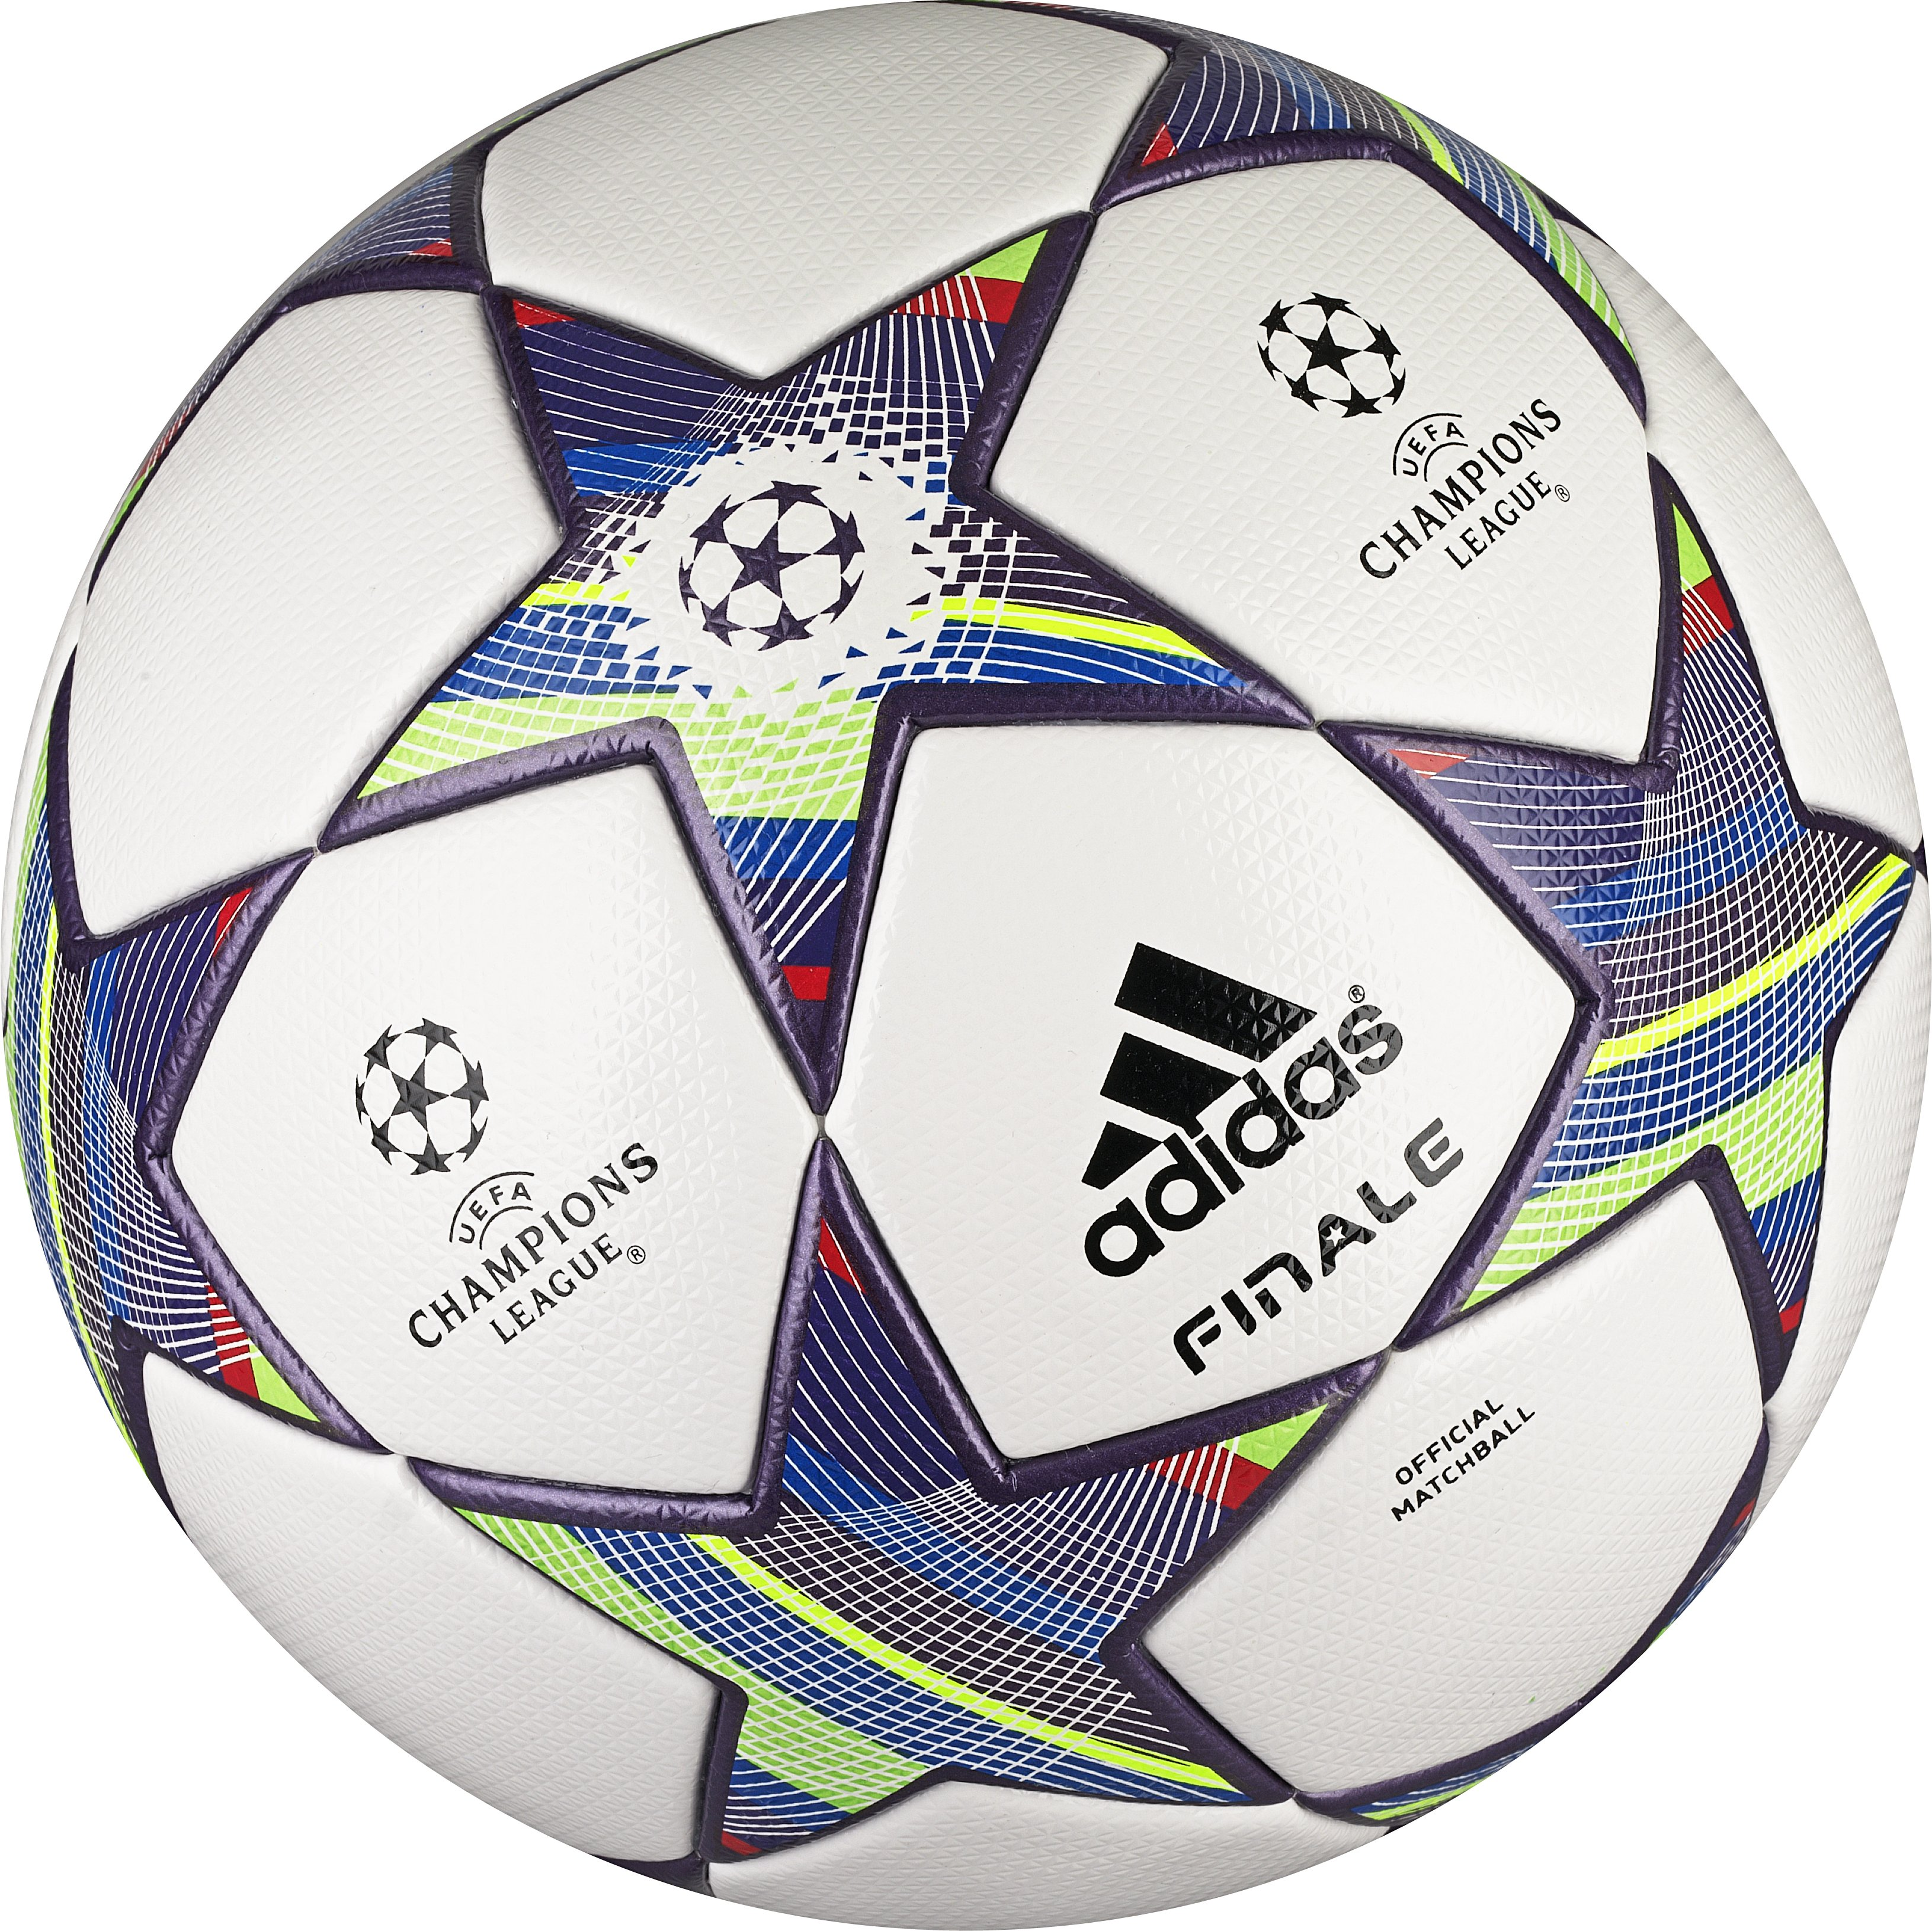 Champions League: Uefa Champions League 2011/12 Official Football Release